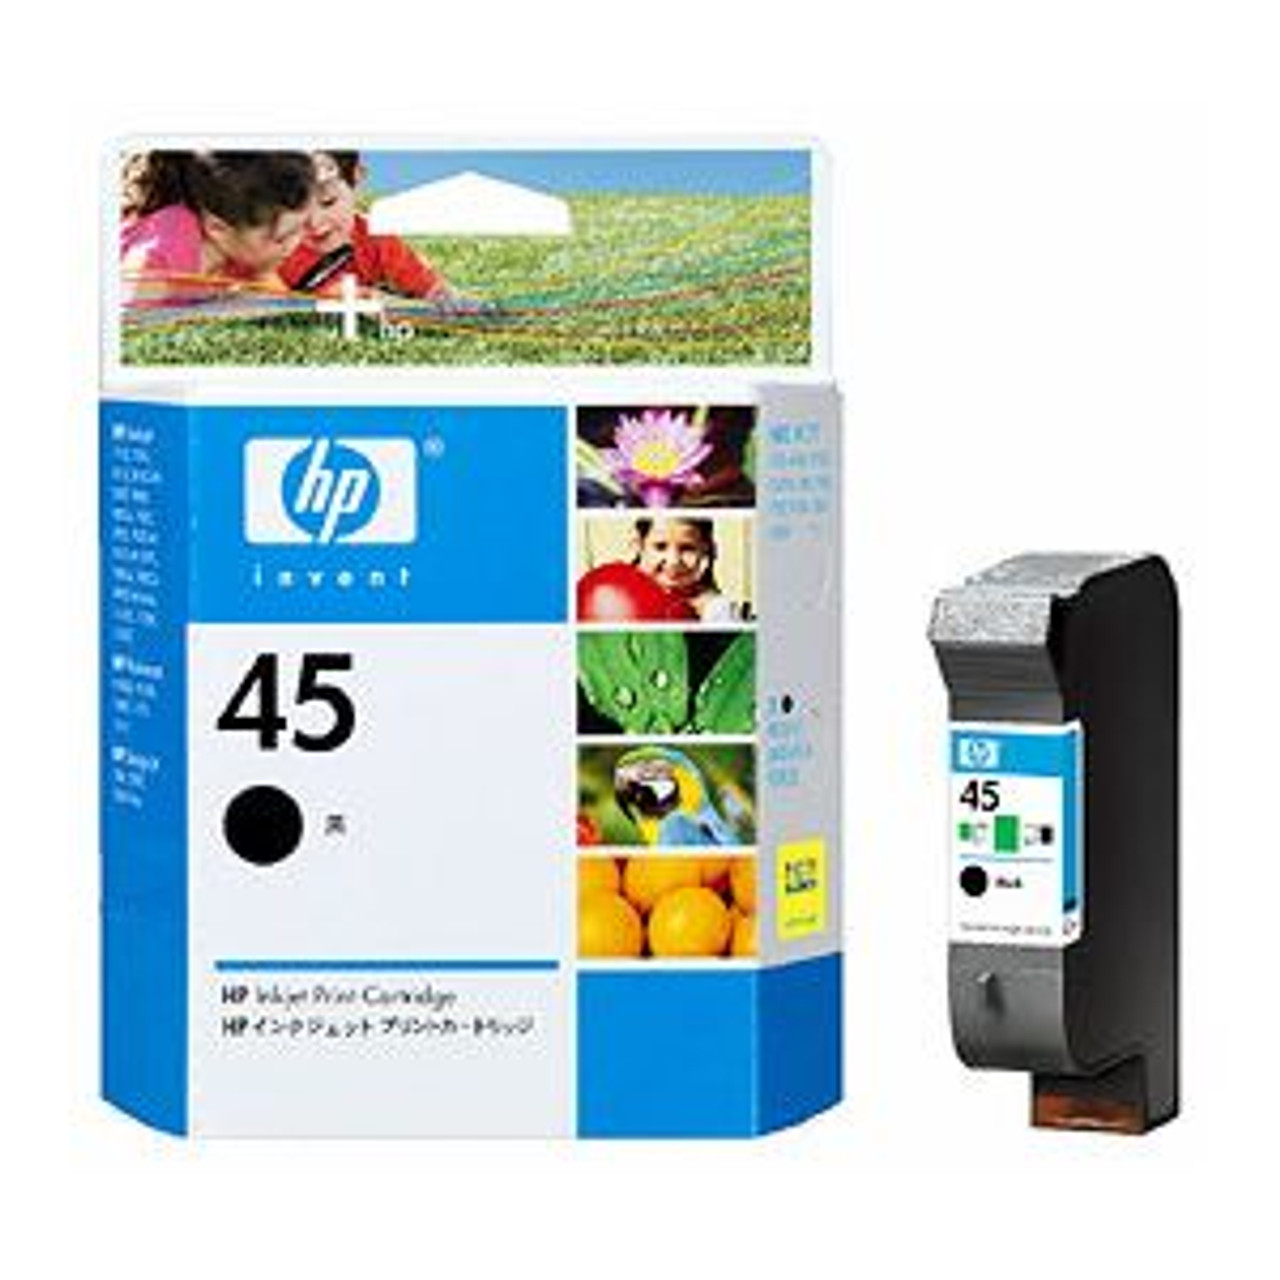 Image for HP No.45 Black Inkjet Cartridge (51645AA) CX Computer Superstore